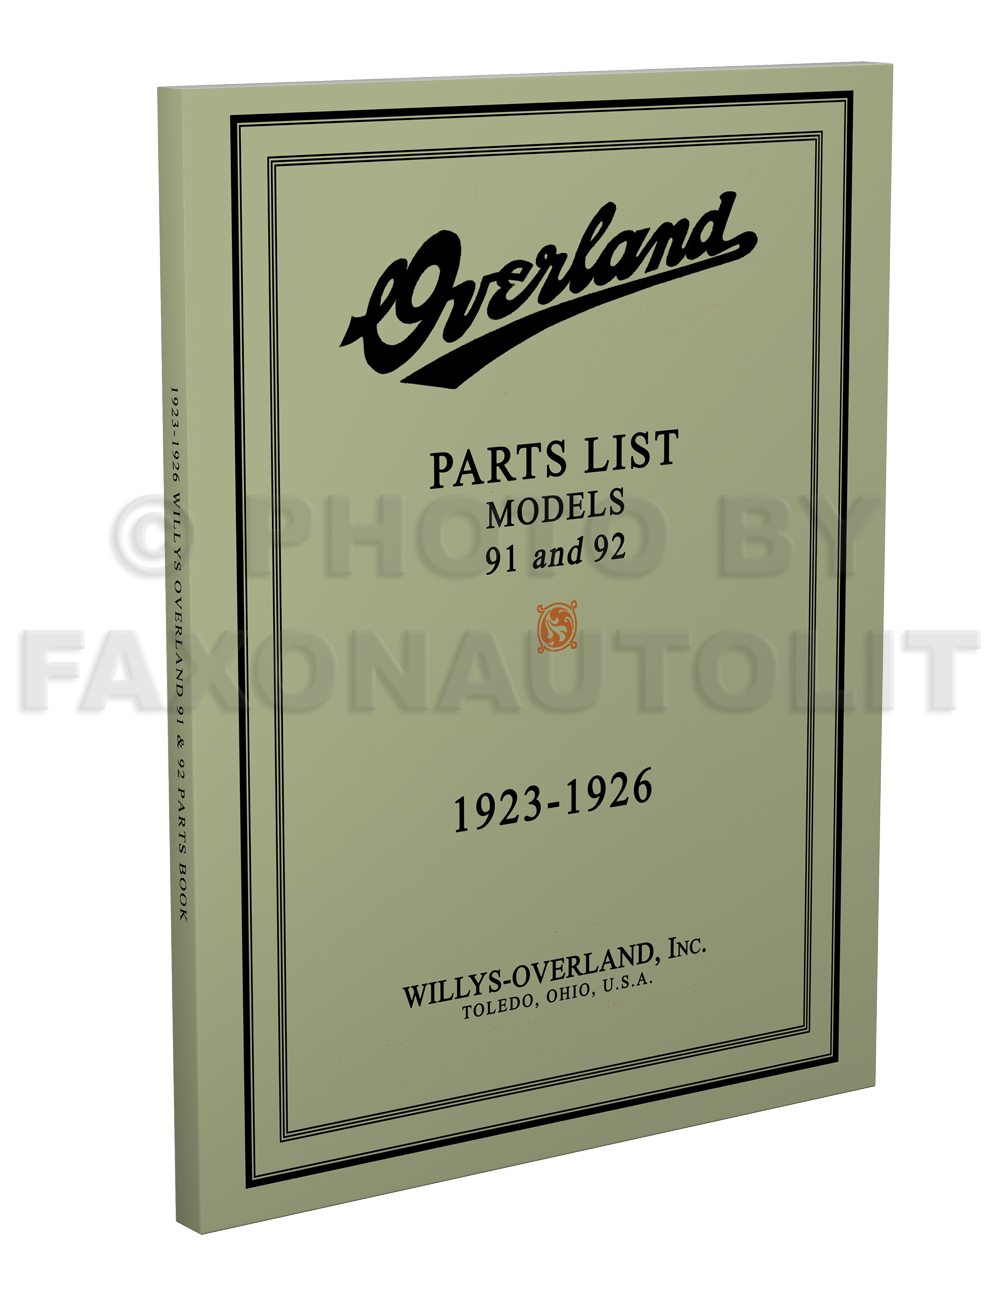 1923-1926 Willys-Overland Model 91 and 92 Parts Book Reprint